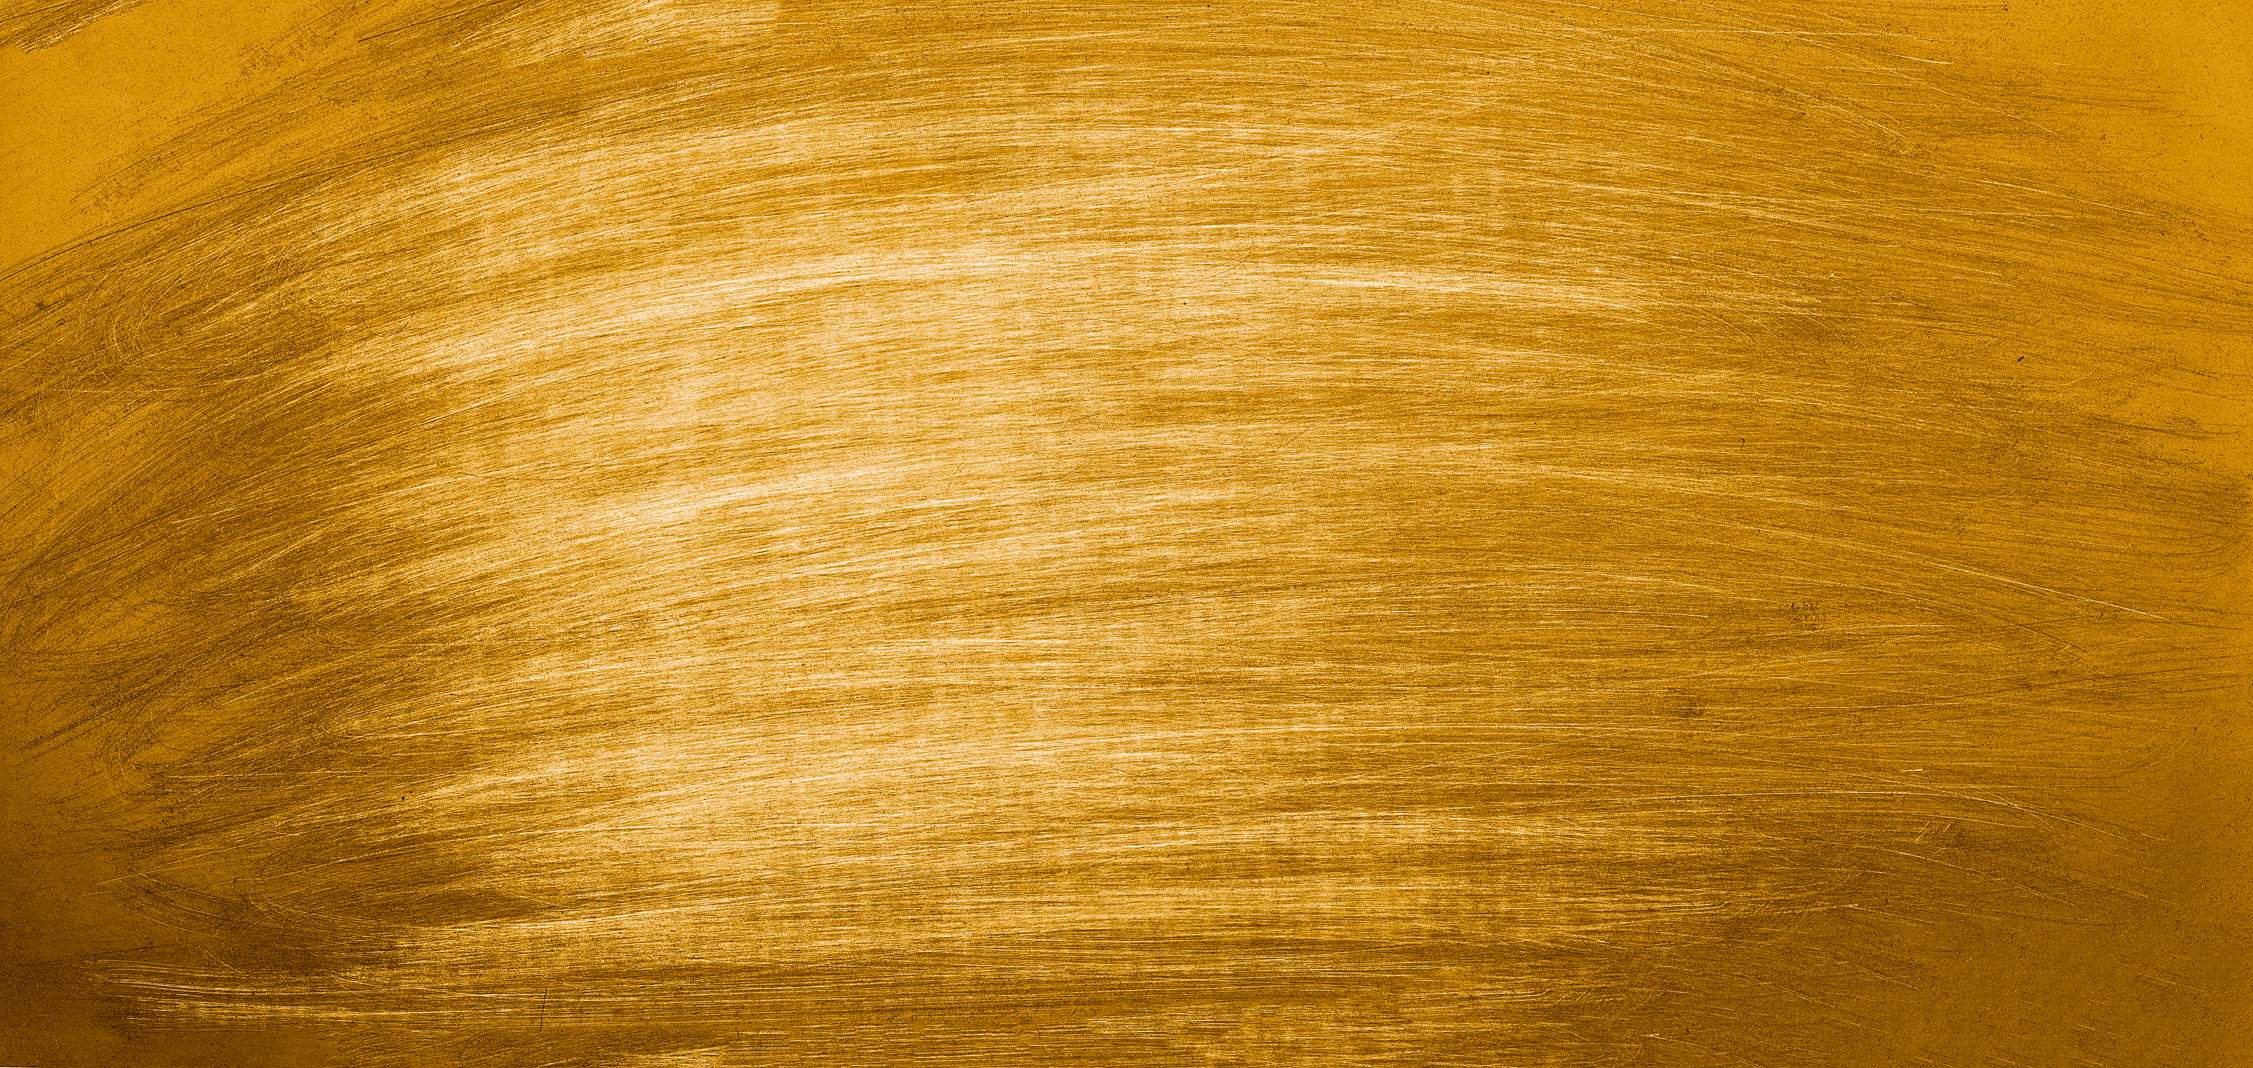 Yellow Brown Vintage Scratched Paint Wall Background - PhotoHDX